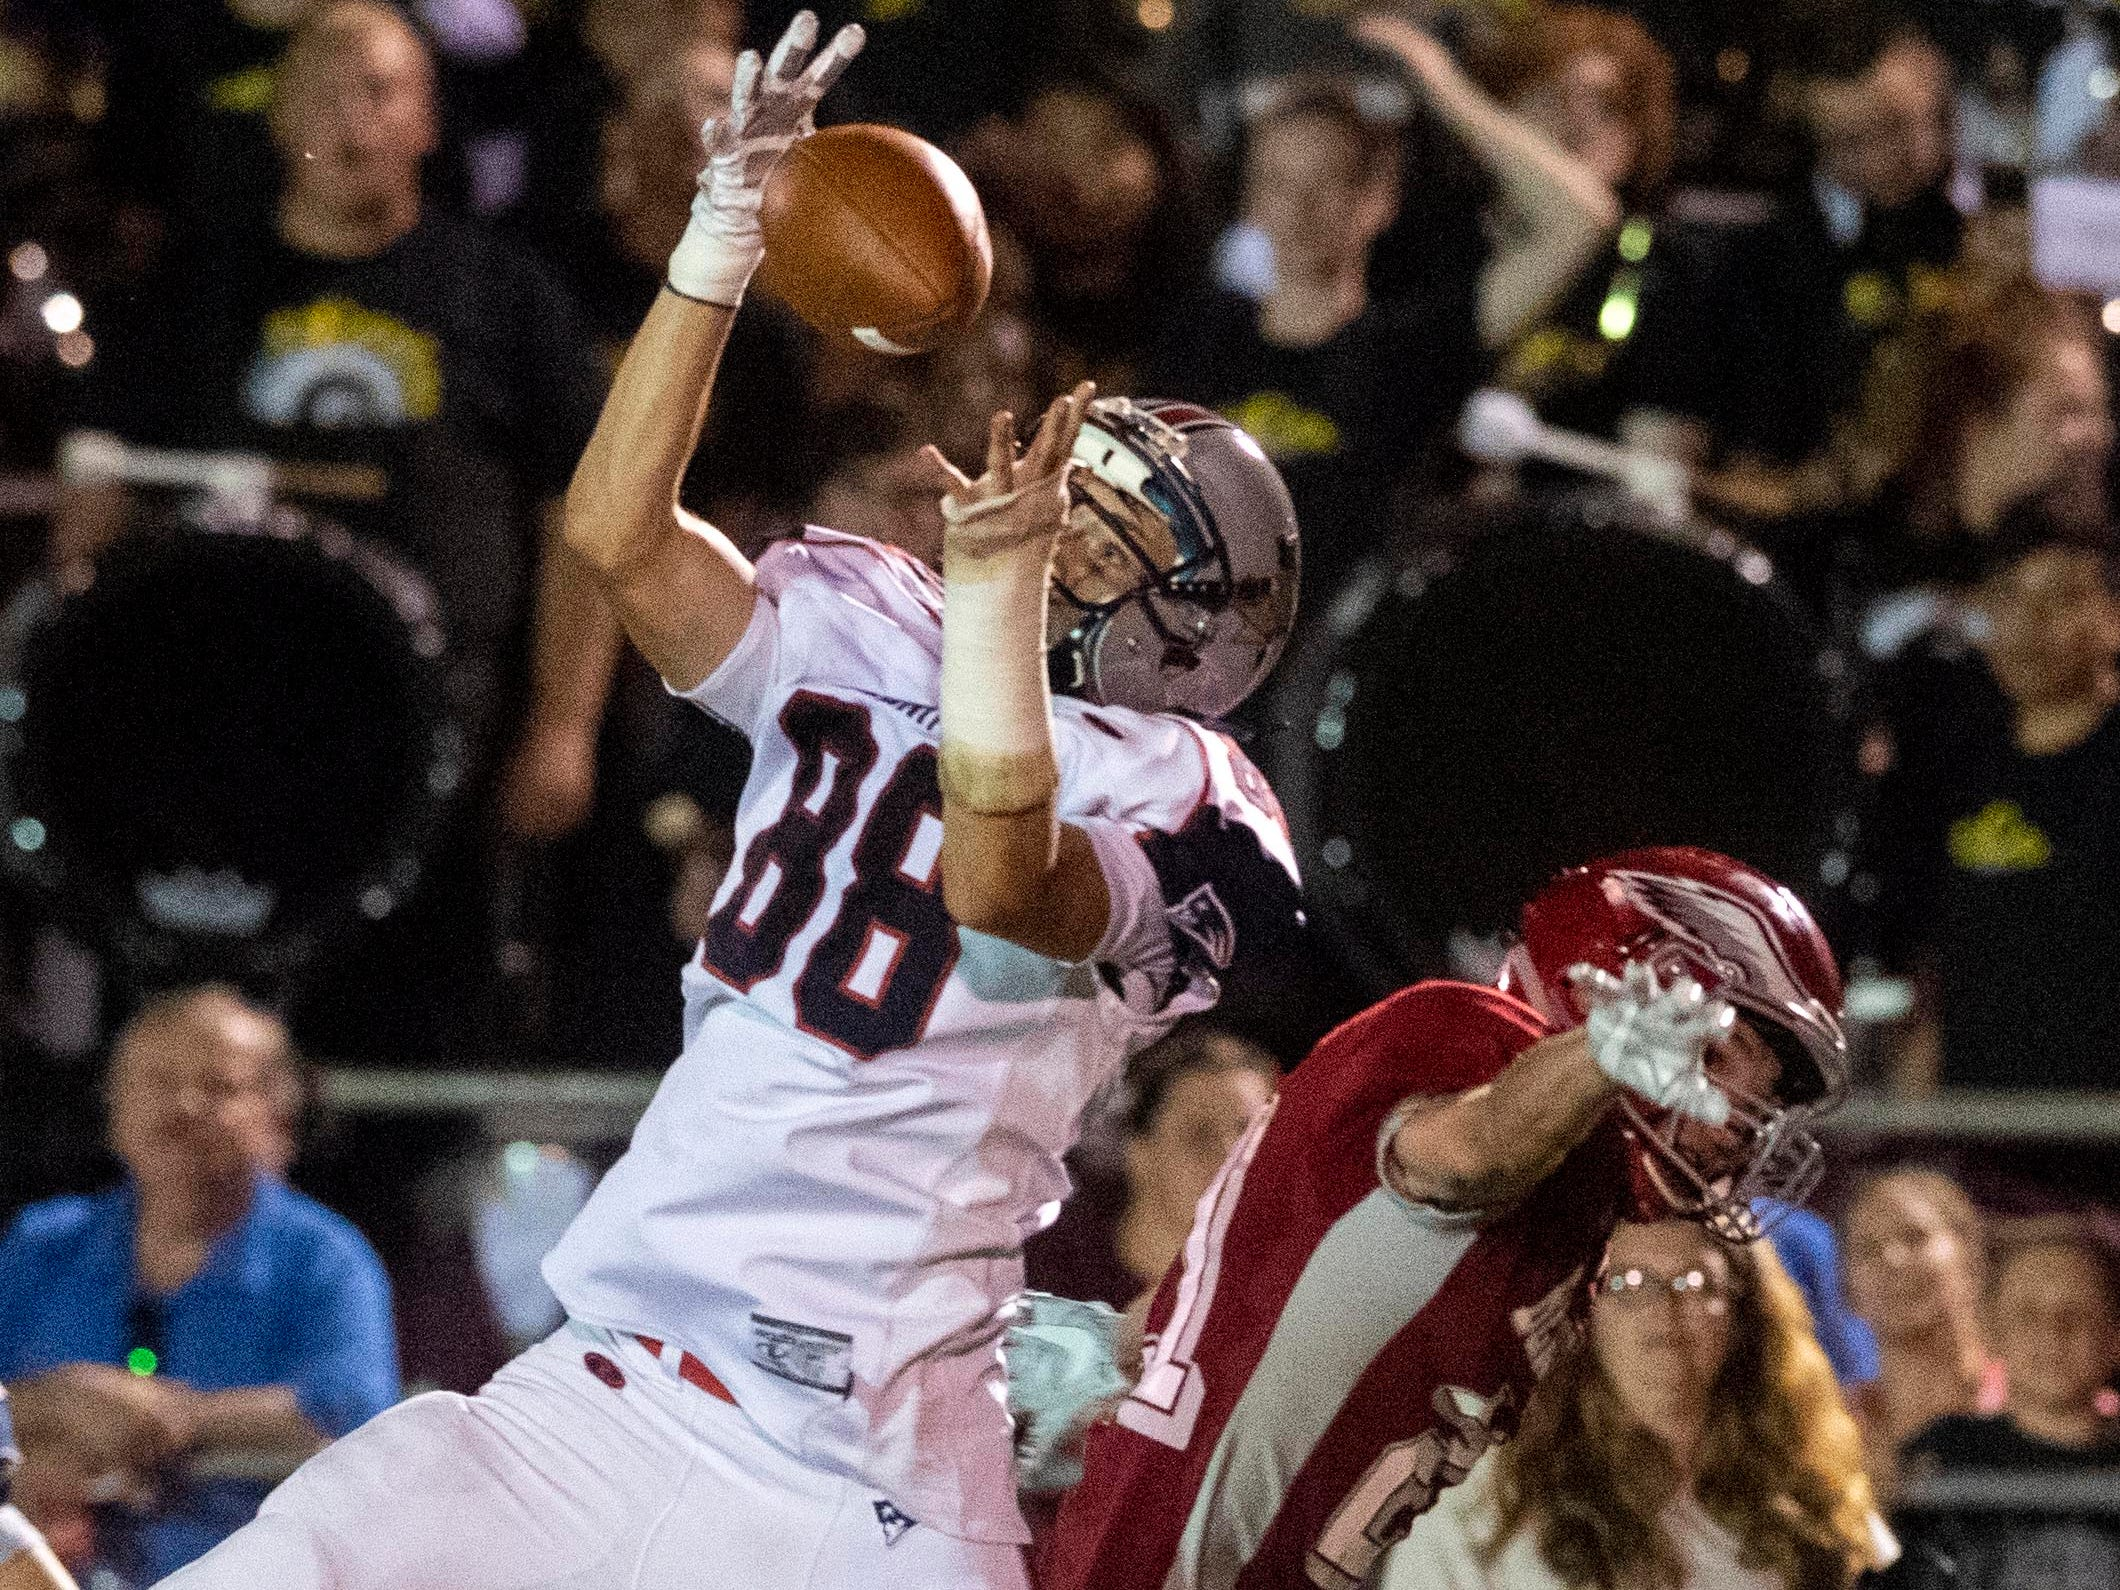 New Oxford's Chase Nell (88) leaps up for a catch over a Bermudian Springs' defender, Friday, Aug. 24, 2018. The Eagles skimmed past the Colonials, 28-22.